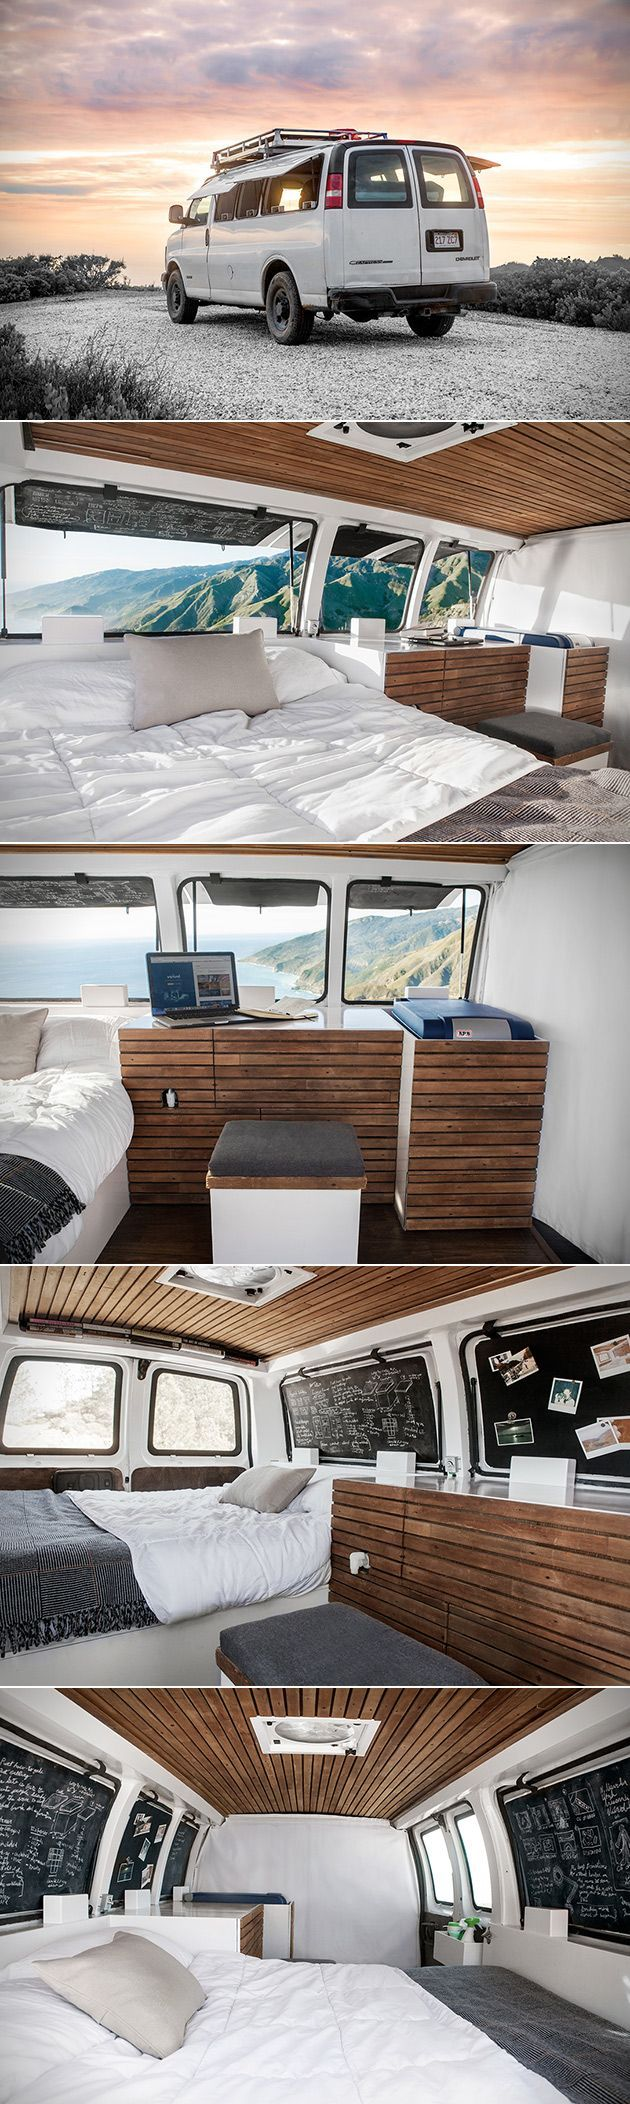 Cool 101 Best Camper Modern Interior https://decoratio.co/2017/05/101-best-camper-modern-interior/ Some tents even include a vestibule which allows for this. Bigger tents, like an 8-man tent, will arrive in two to three room alternatives